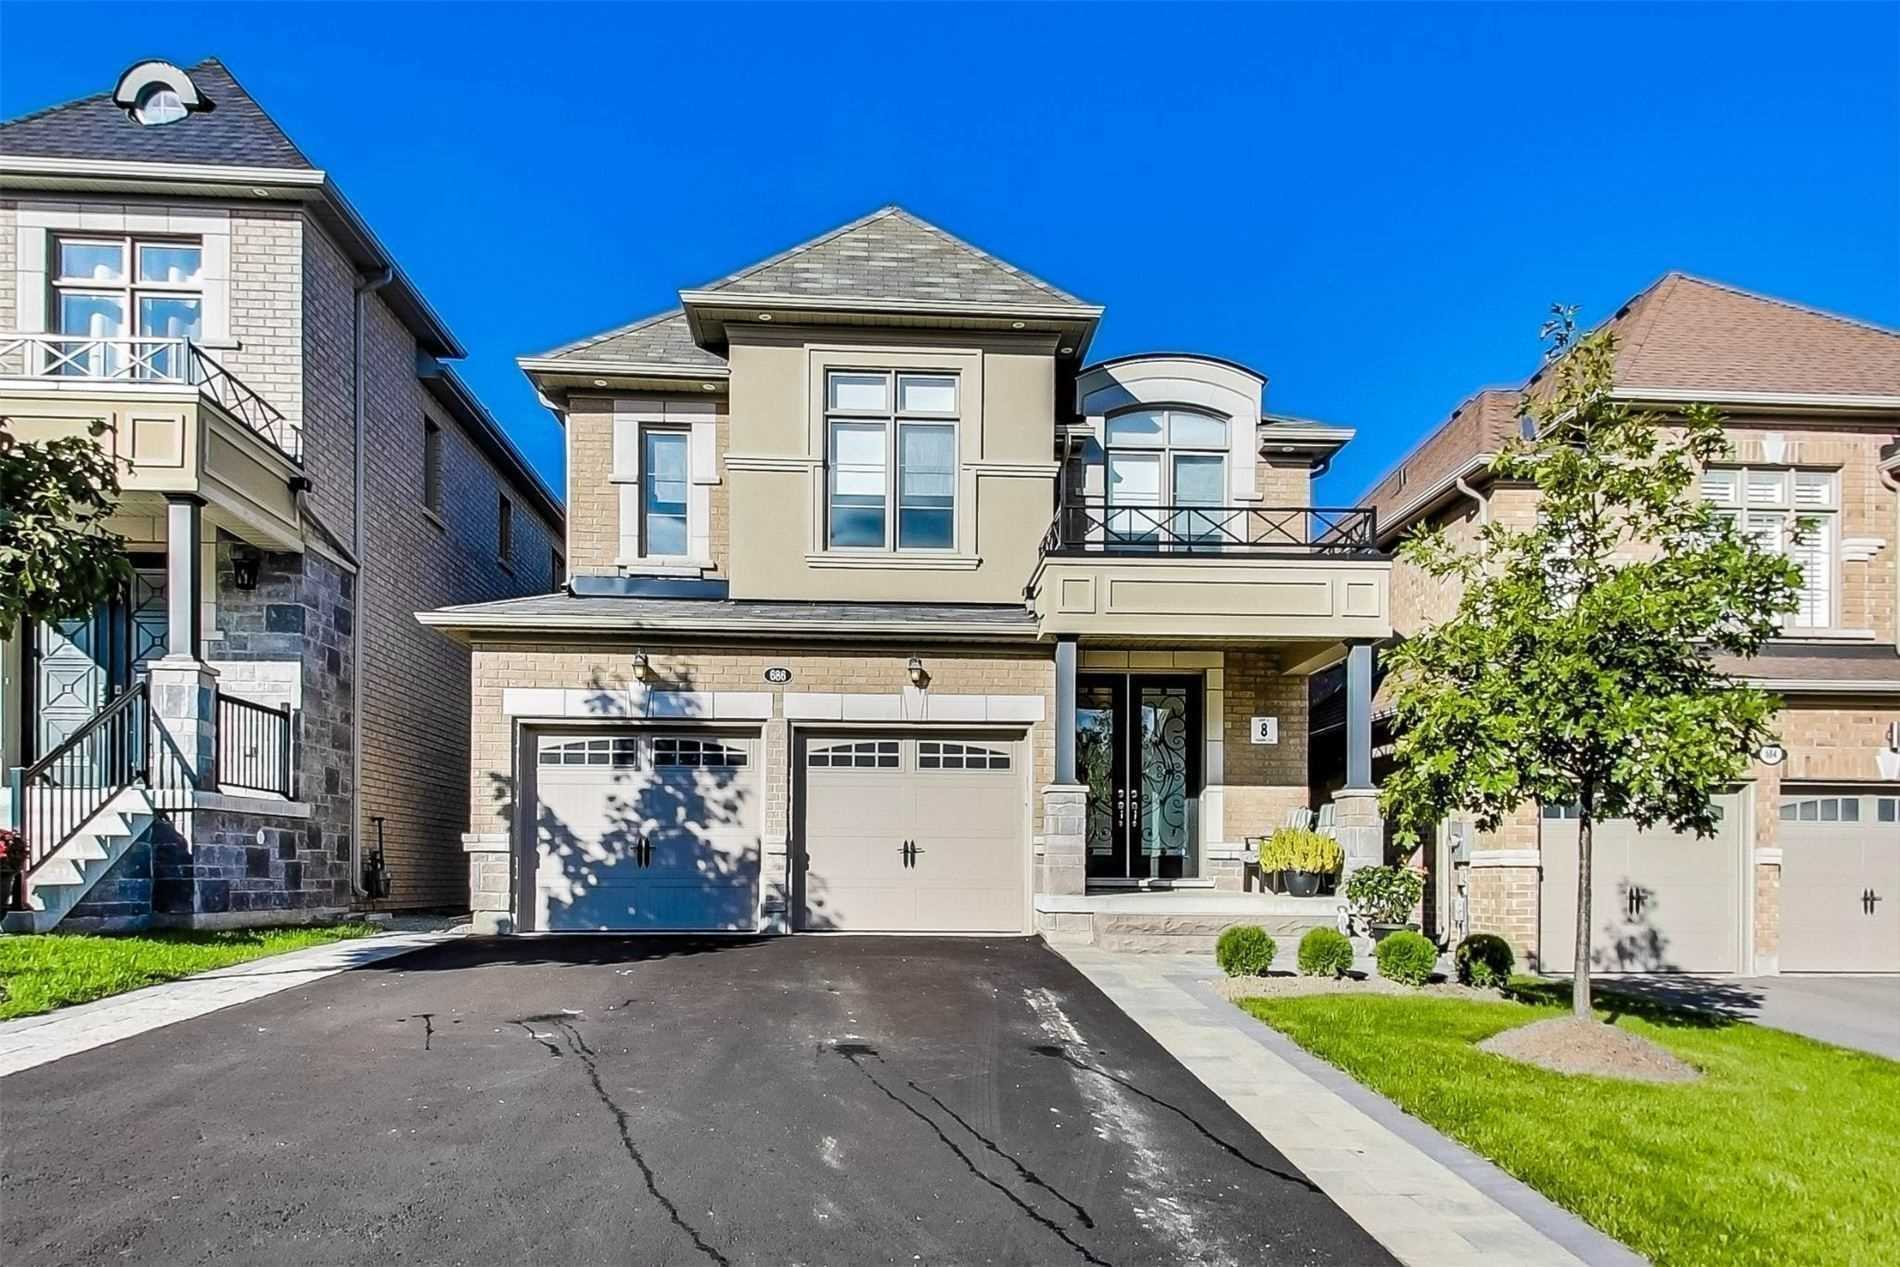 For Sale: 686 Mcgregor Farm Trail, Newmarket, ON | 4 Bed, 3 Bath House for $1158800.00. See 38 photos!